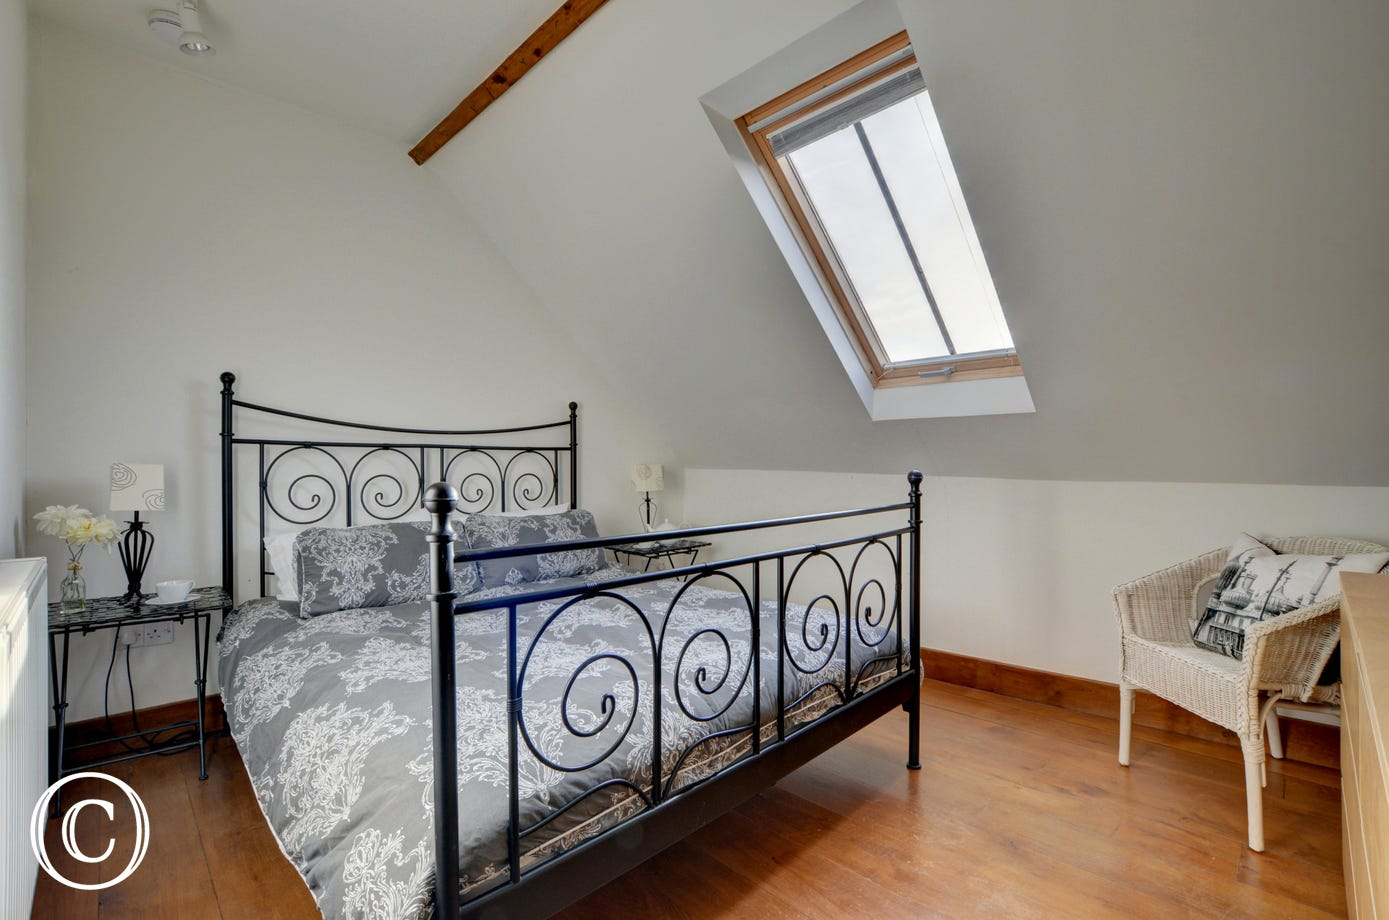 Double bedroom which is open to the high vaulted ceiling and with a balustrade overlooking the living room below